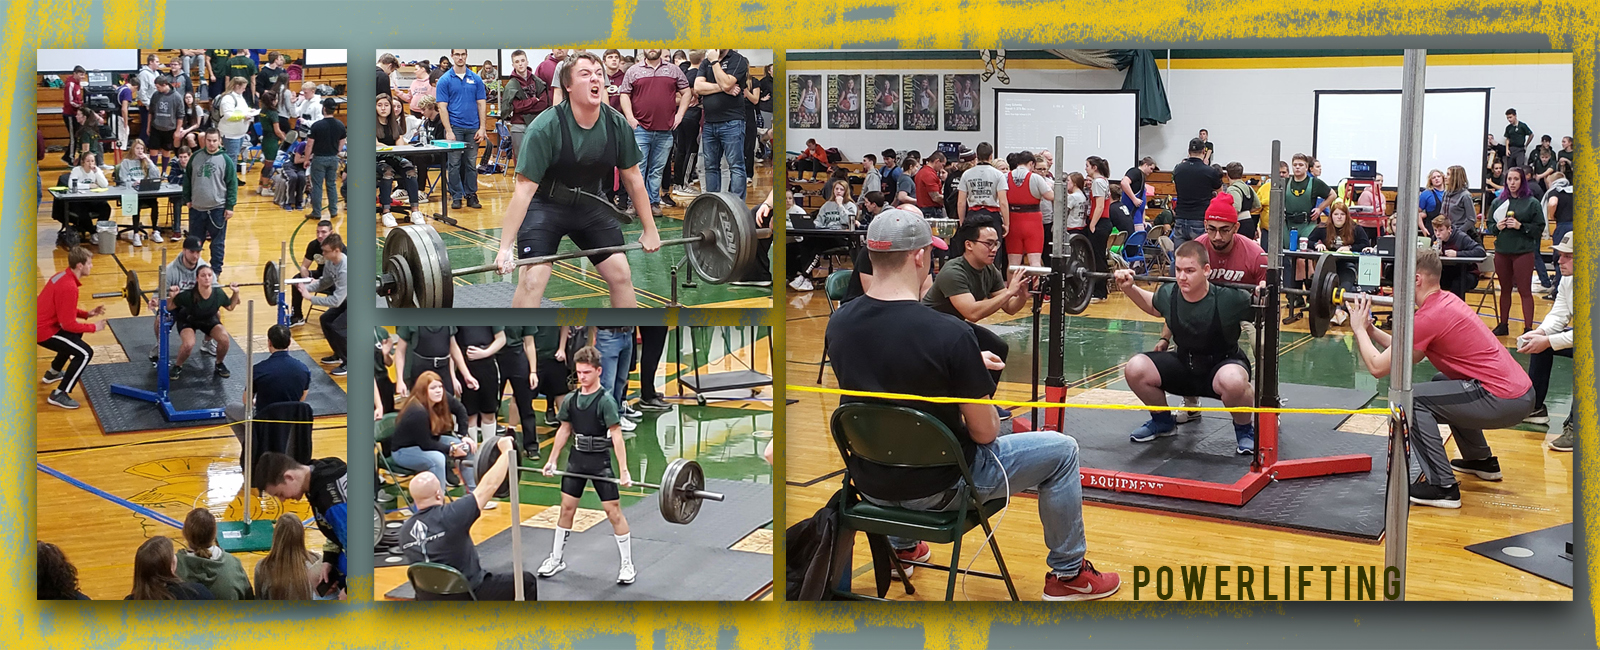 Power lifting 19 photo